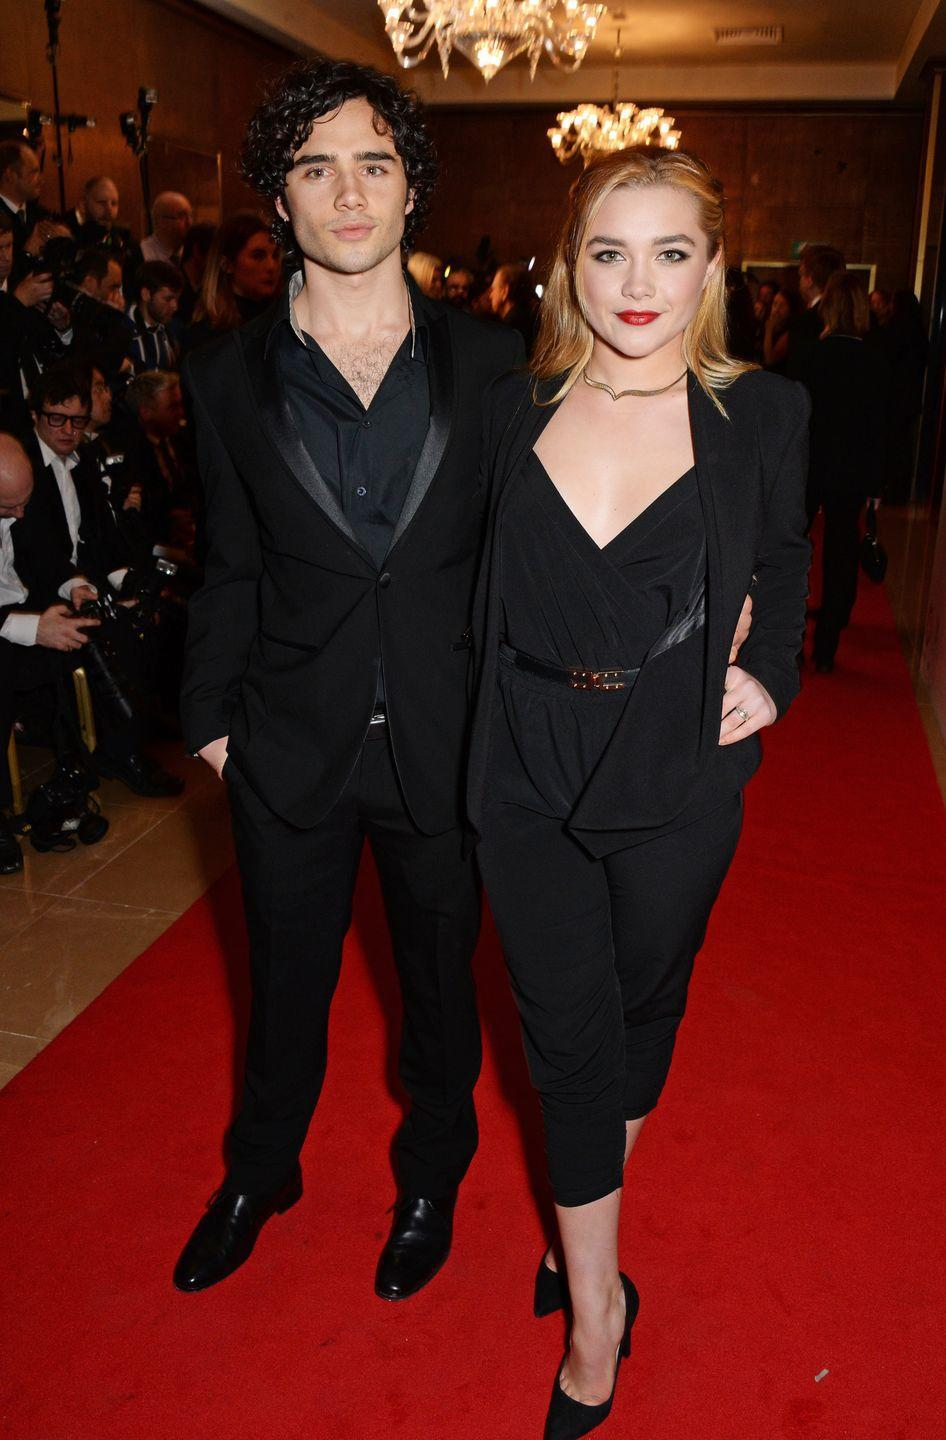 <p>Acting runs in the family for Little Women star Florence Pugh — her older brother, Toby Sebastian, played Trystane Martell in season five of Game of Thrones.</p><p>Not many people realise the connection because he dropped his surname (his name is actually Sebastian Toby Pugh).</p>